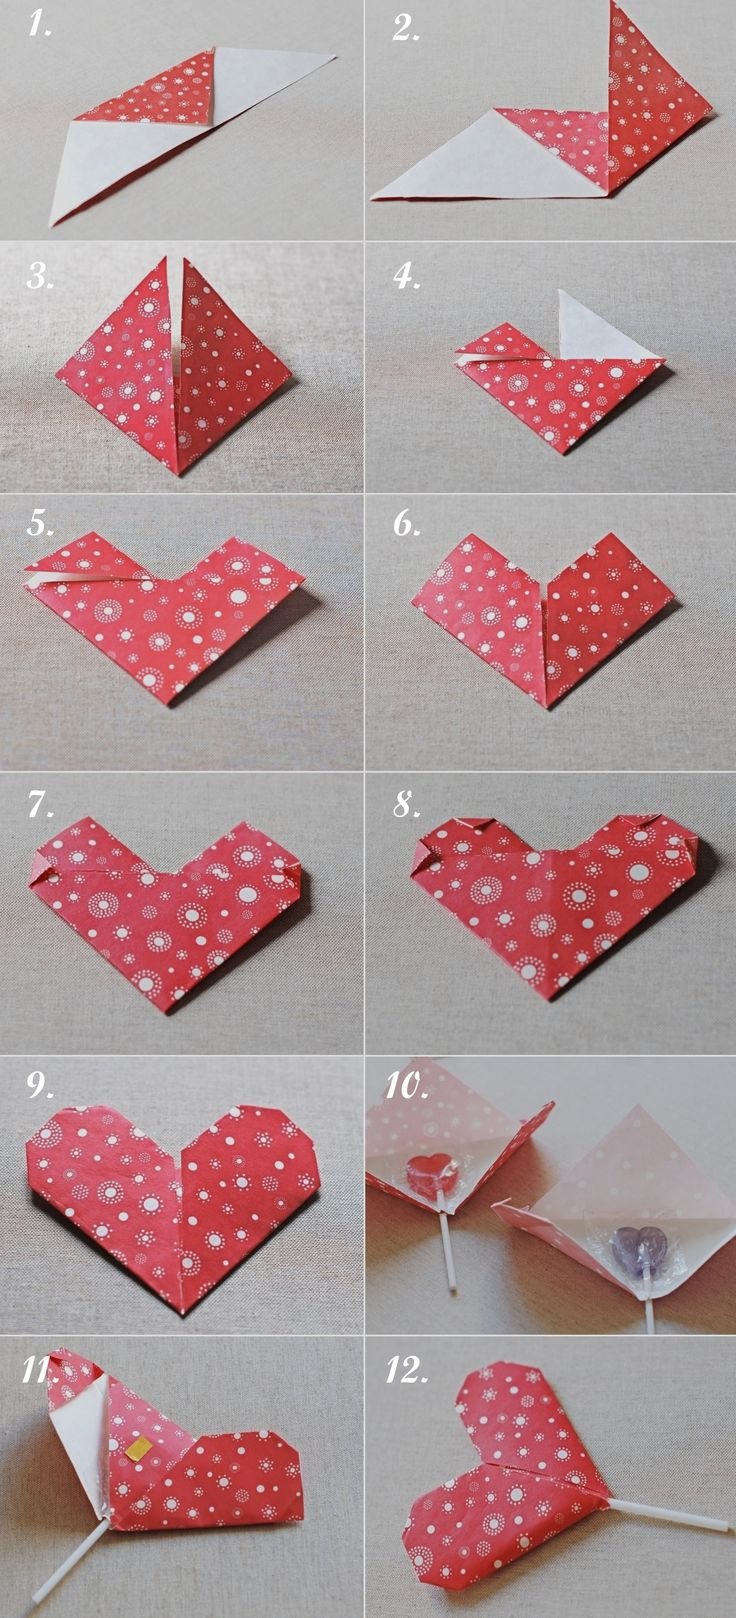 Easy origami, love origami :) used to have my box at attempt